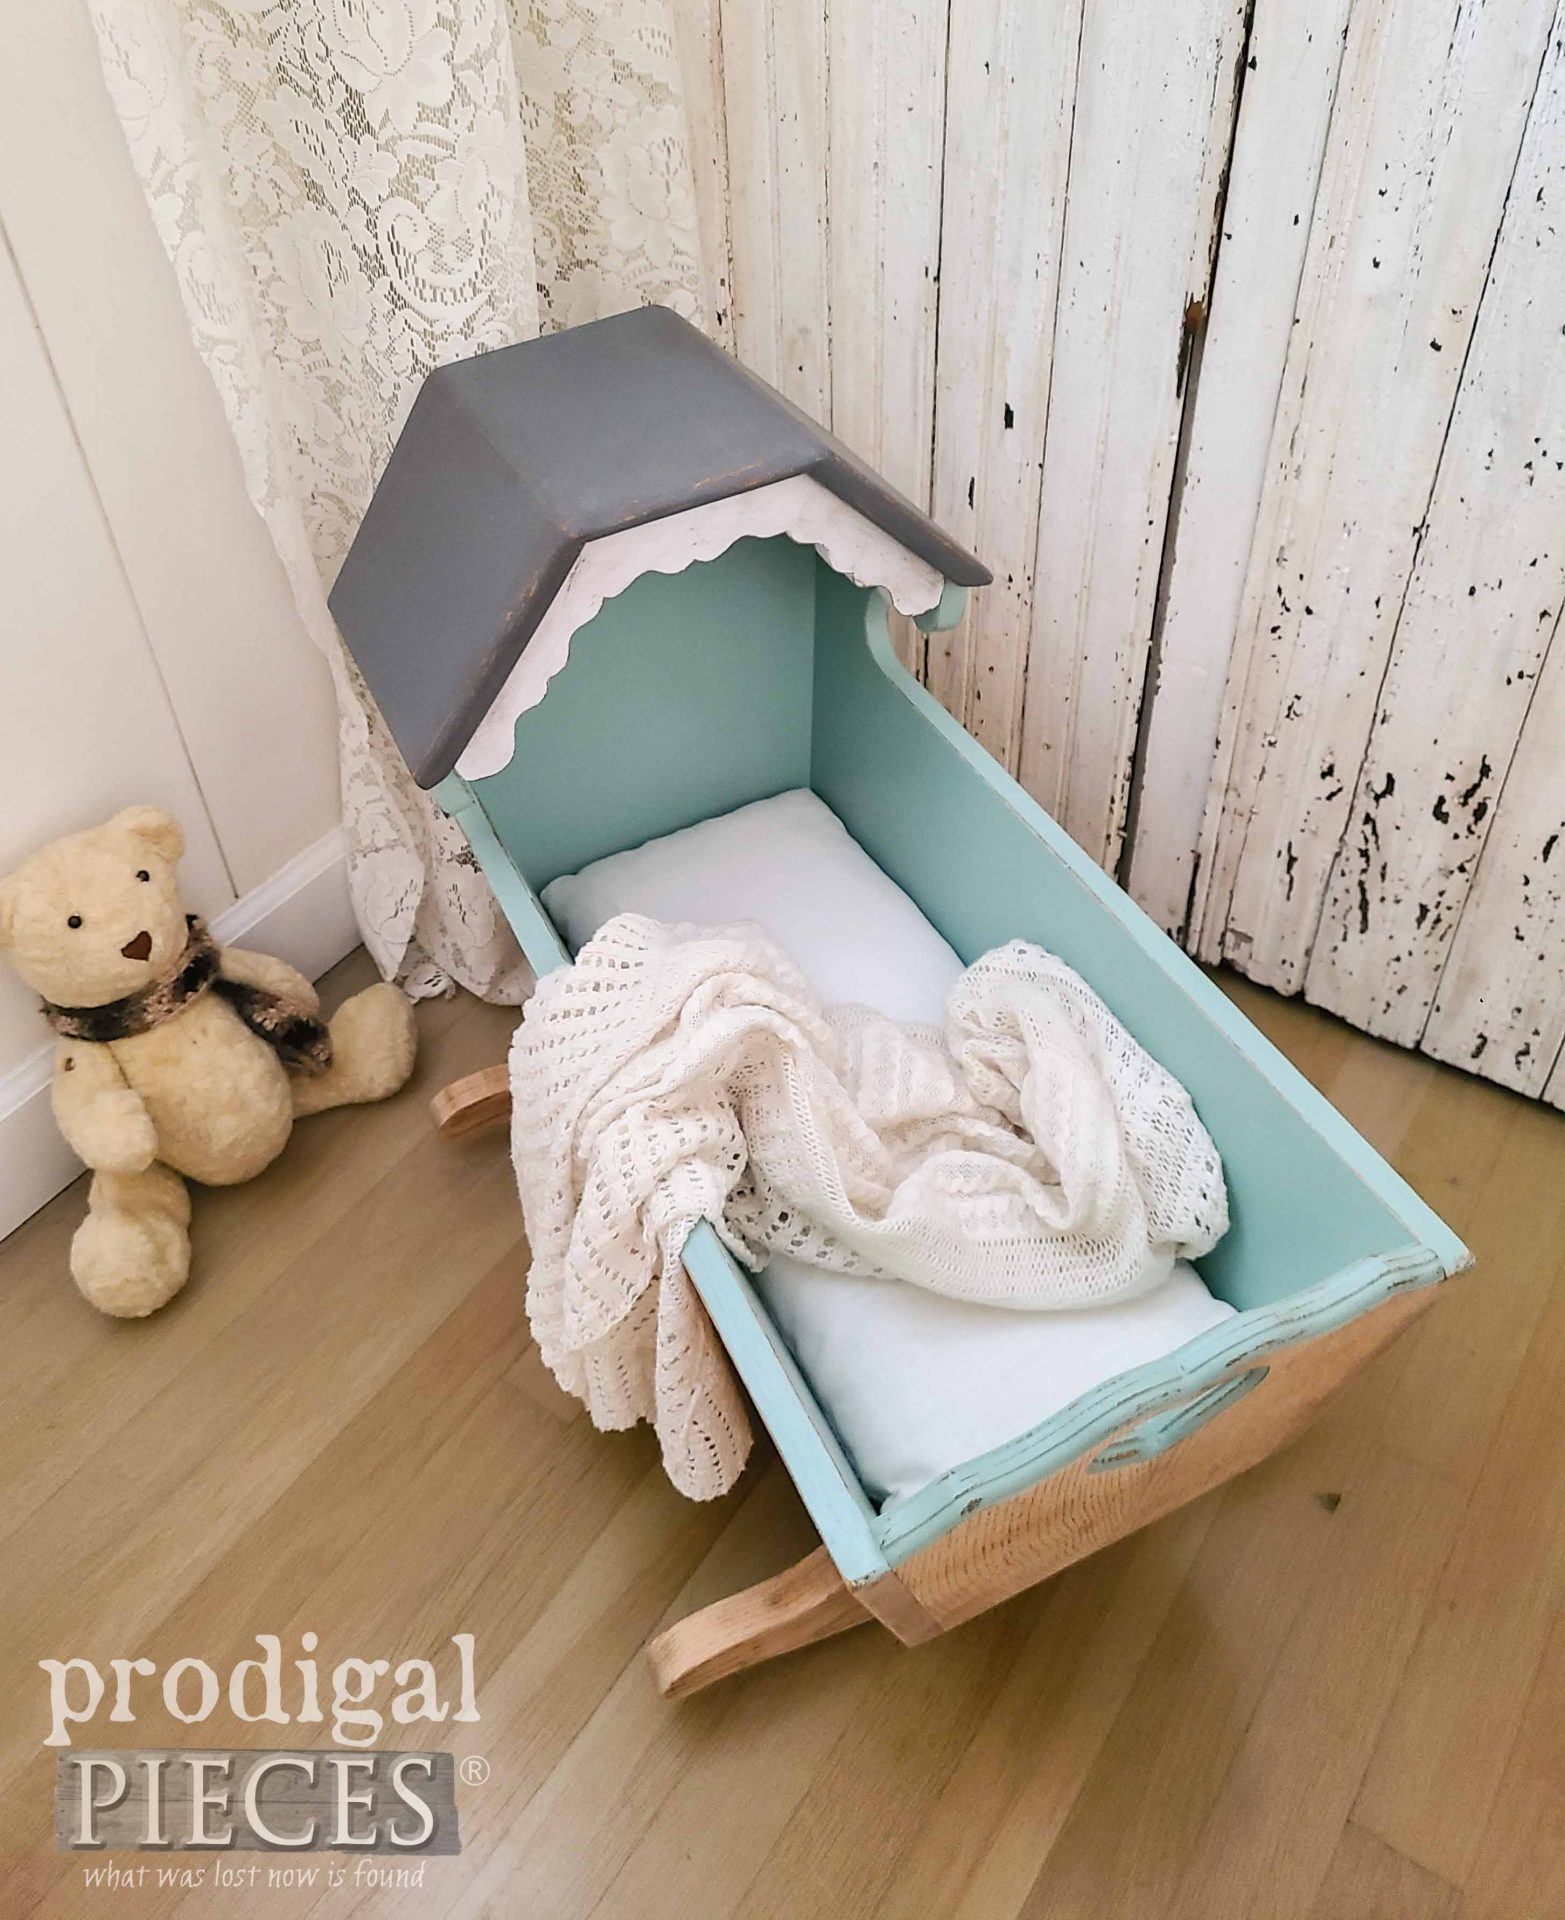 Handmade Linen Cradle Mattress Made by Larissa of Prodigal Pieces | prodigalpieces.com #prodigalpieces #baby #vintage #baby #home